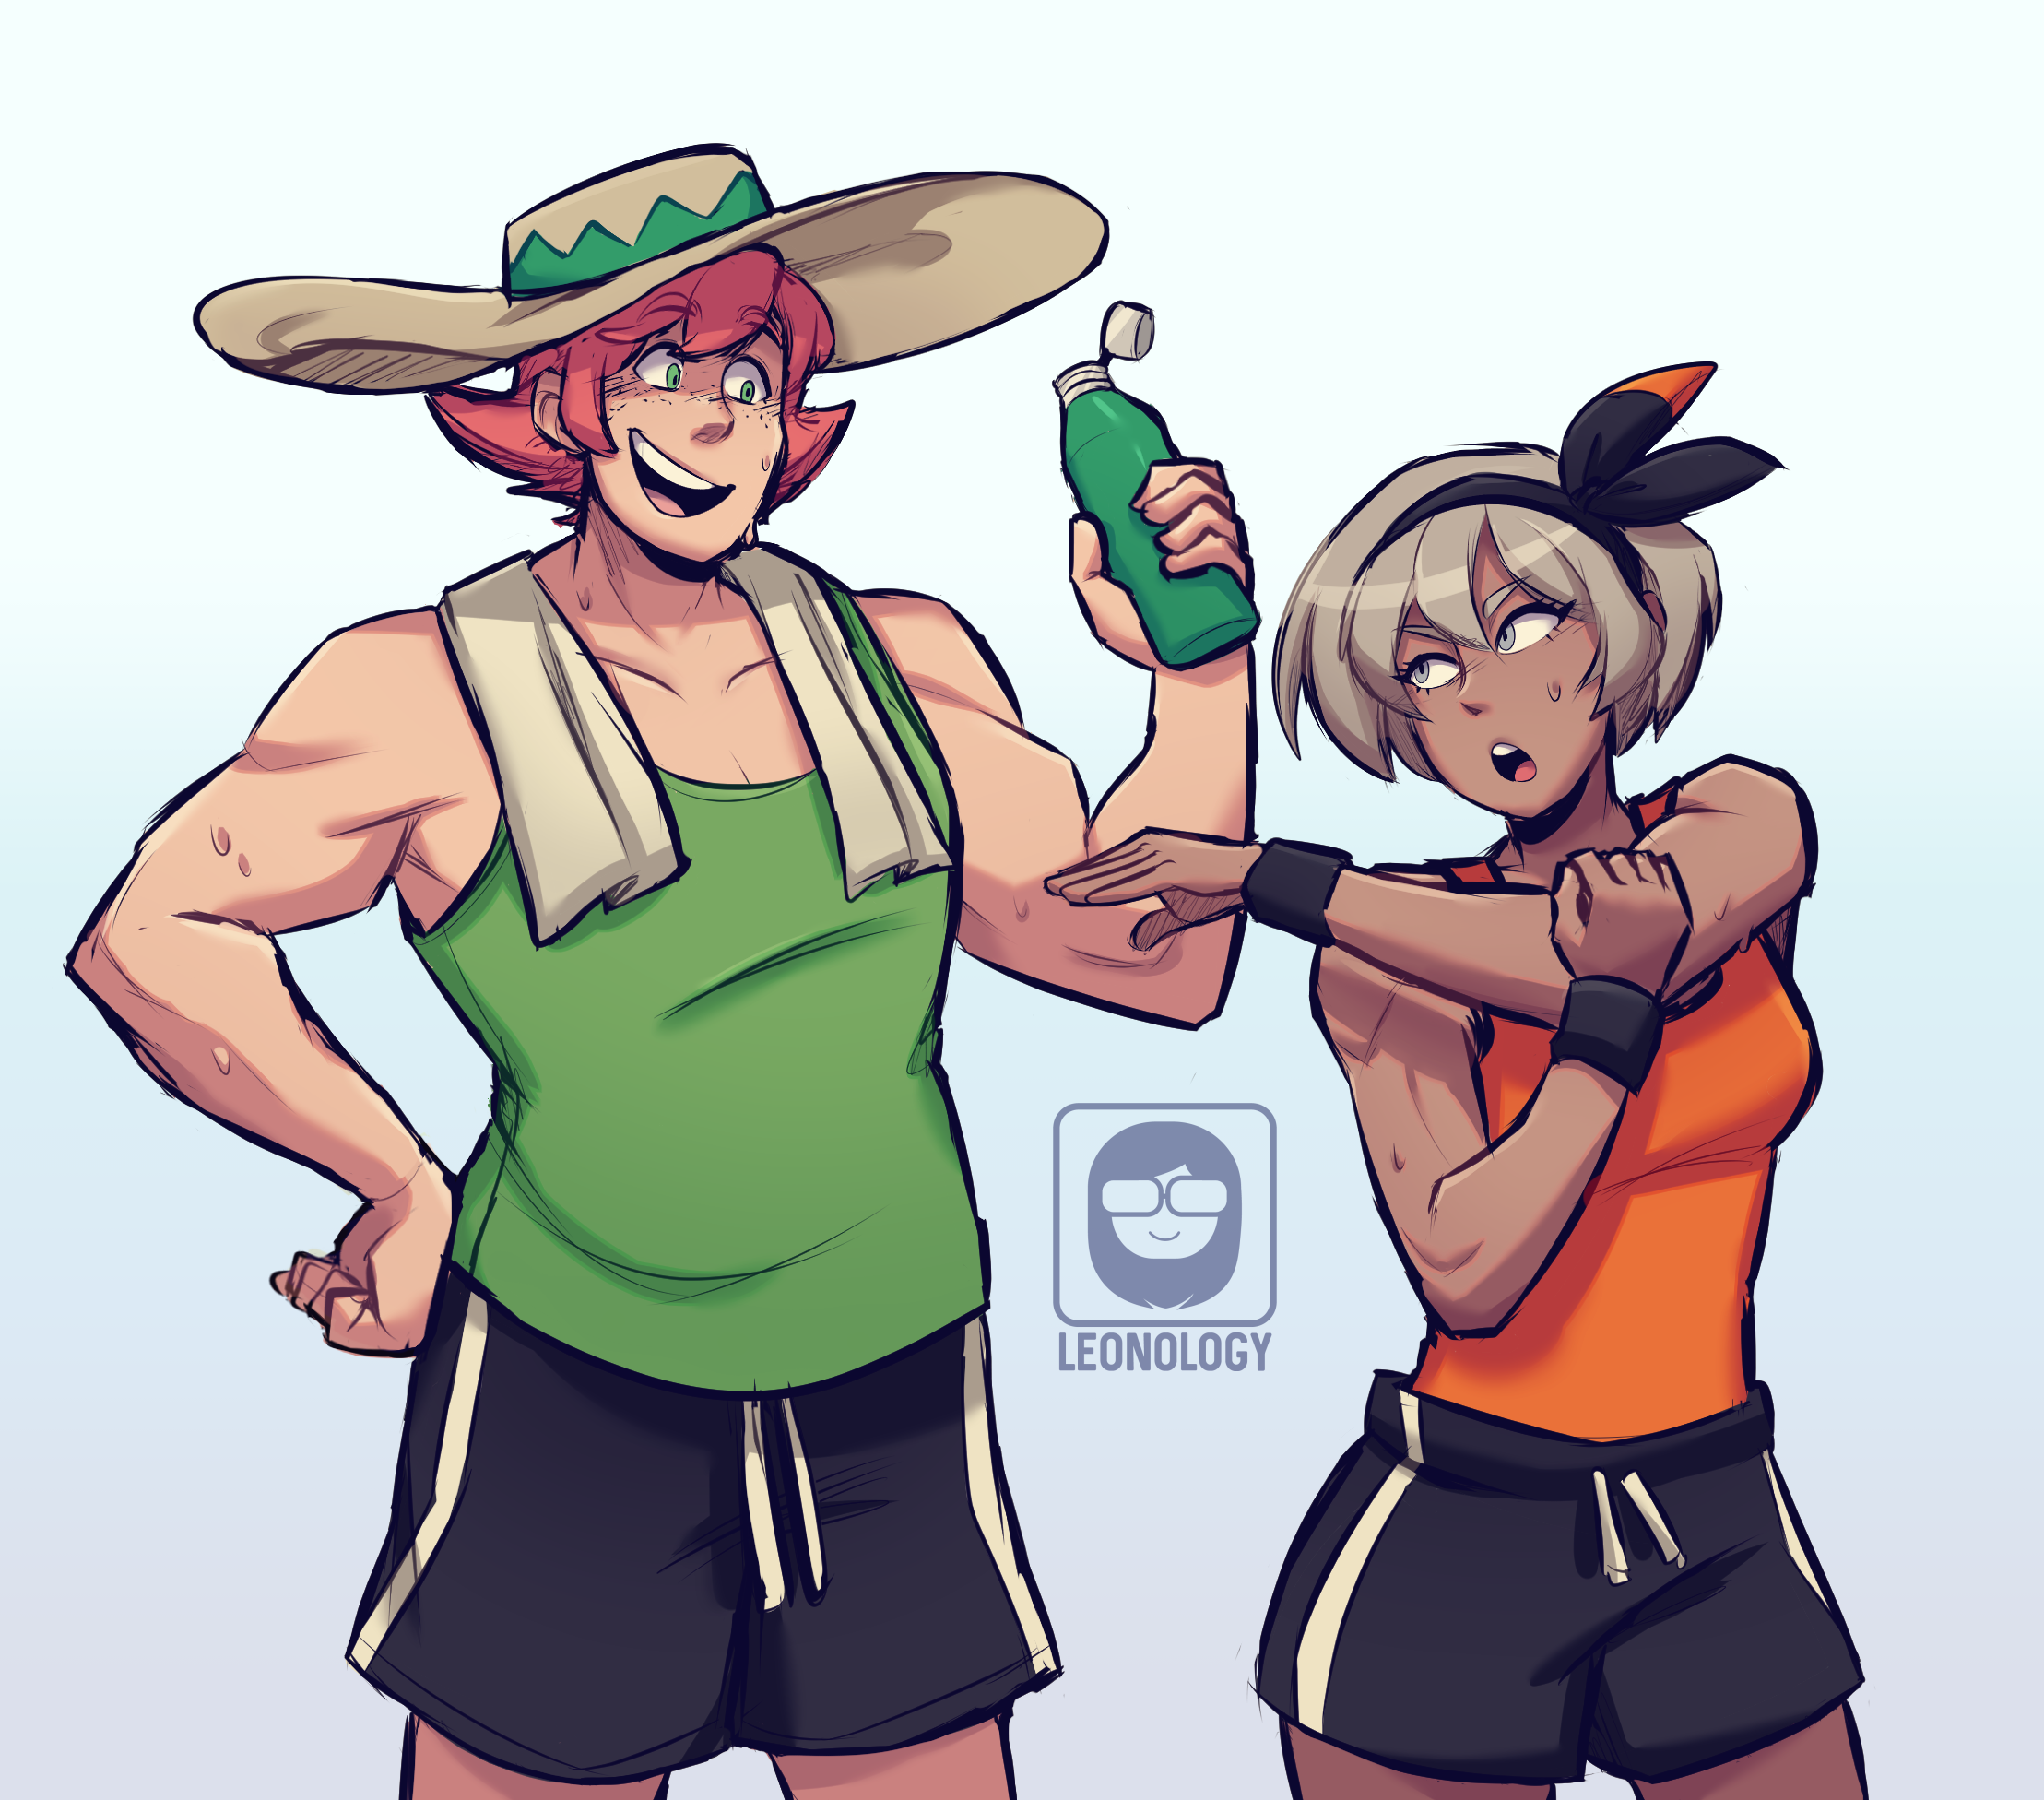 They probably work out together